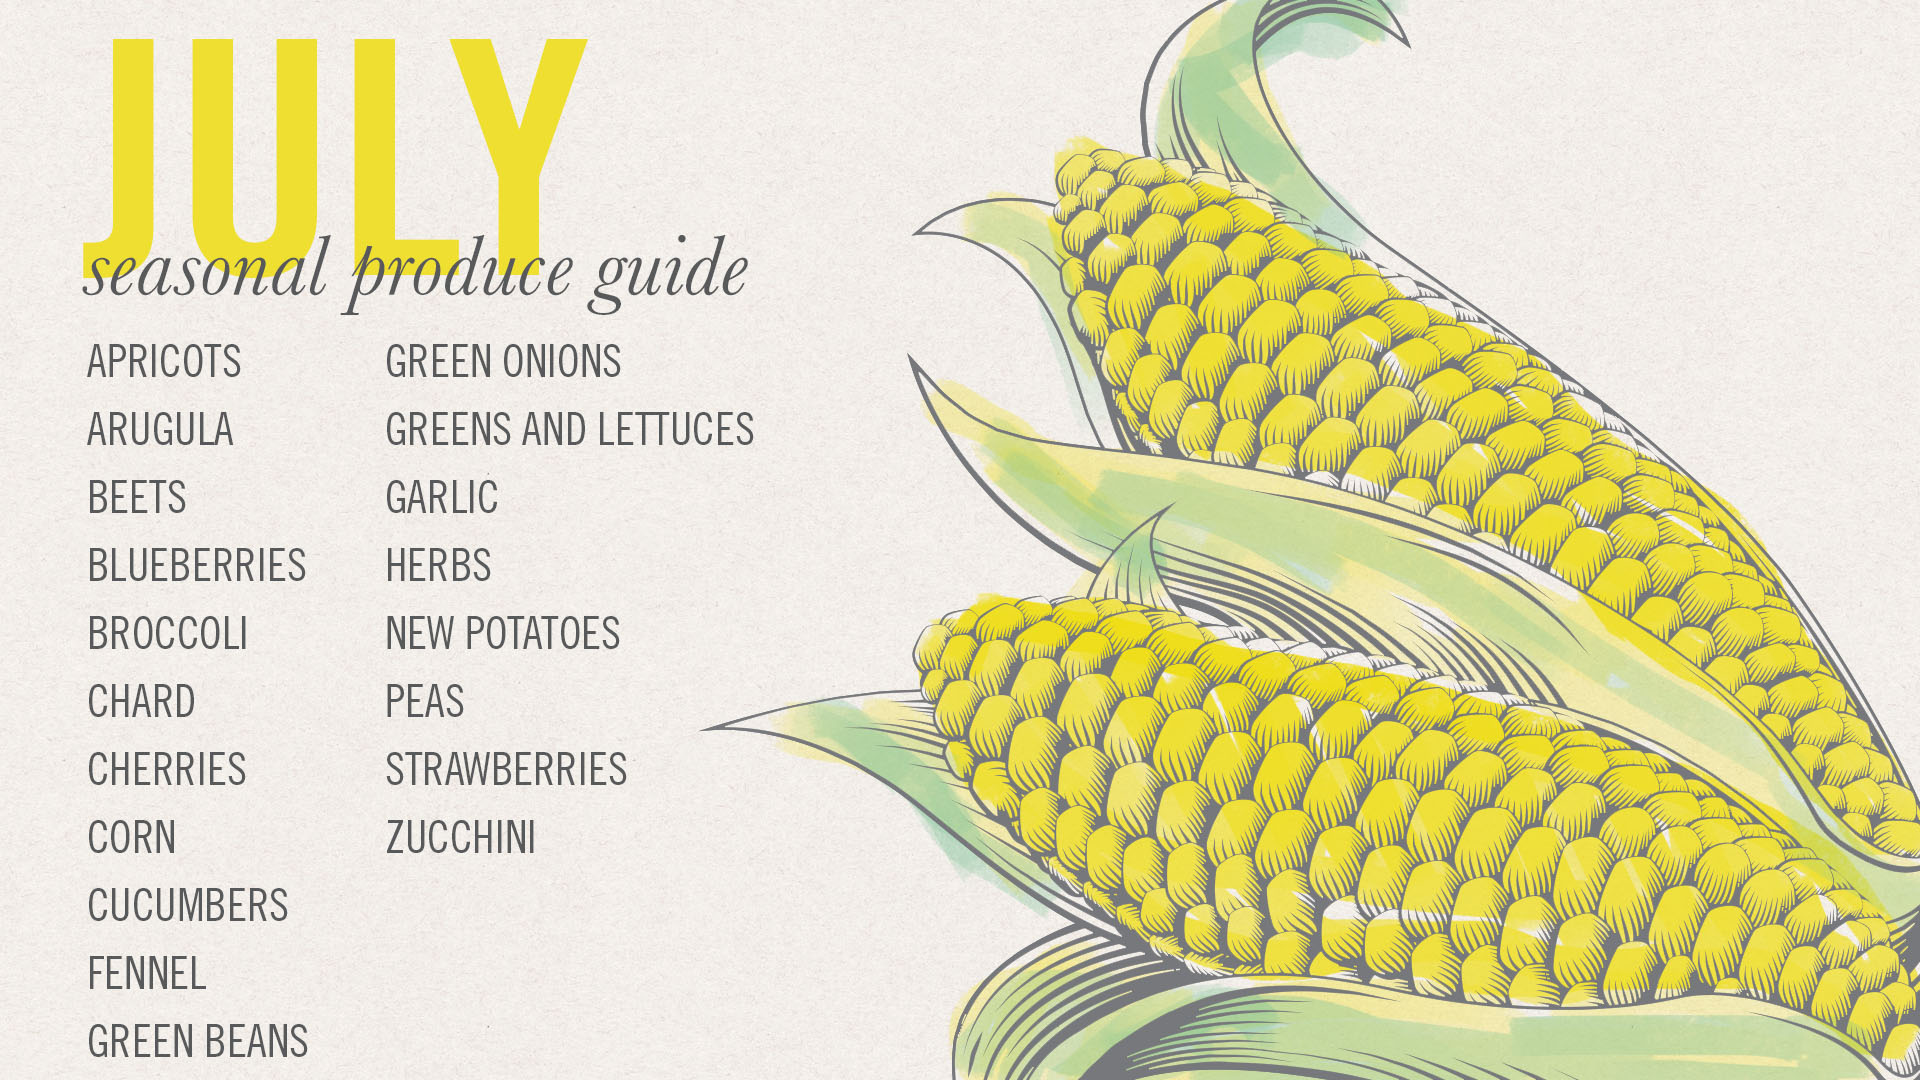 july seasonal produce guide and desktop screensaver • theVintageMixer.com #eatseasonal